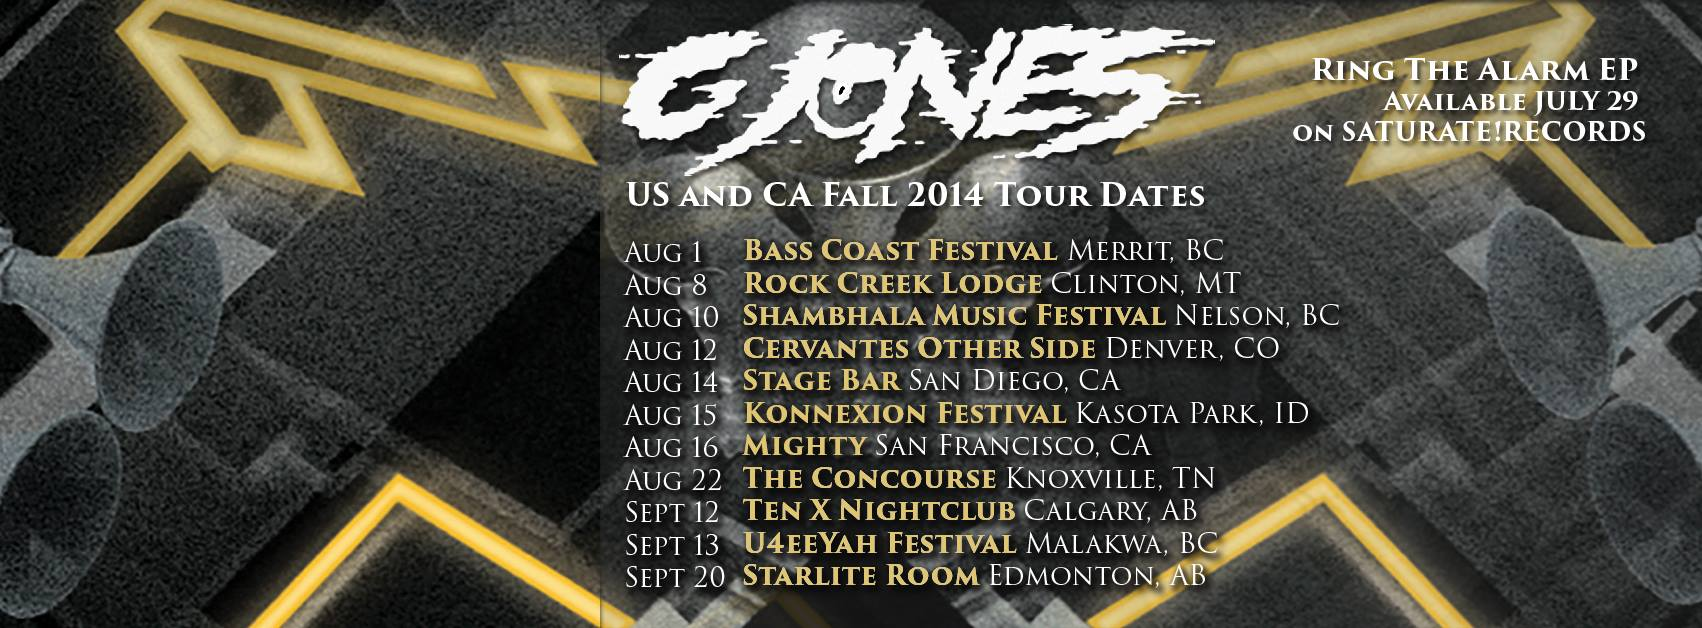 G Jones summer tour